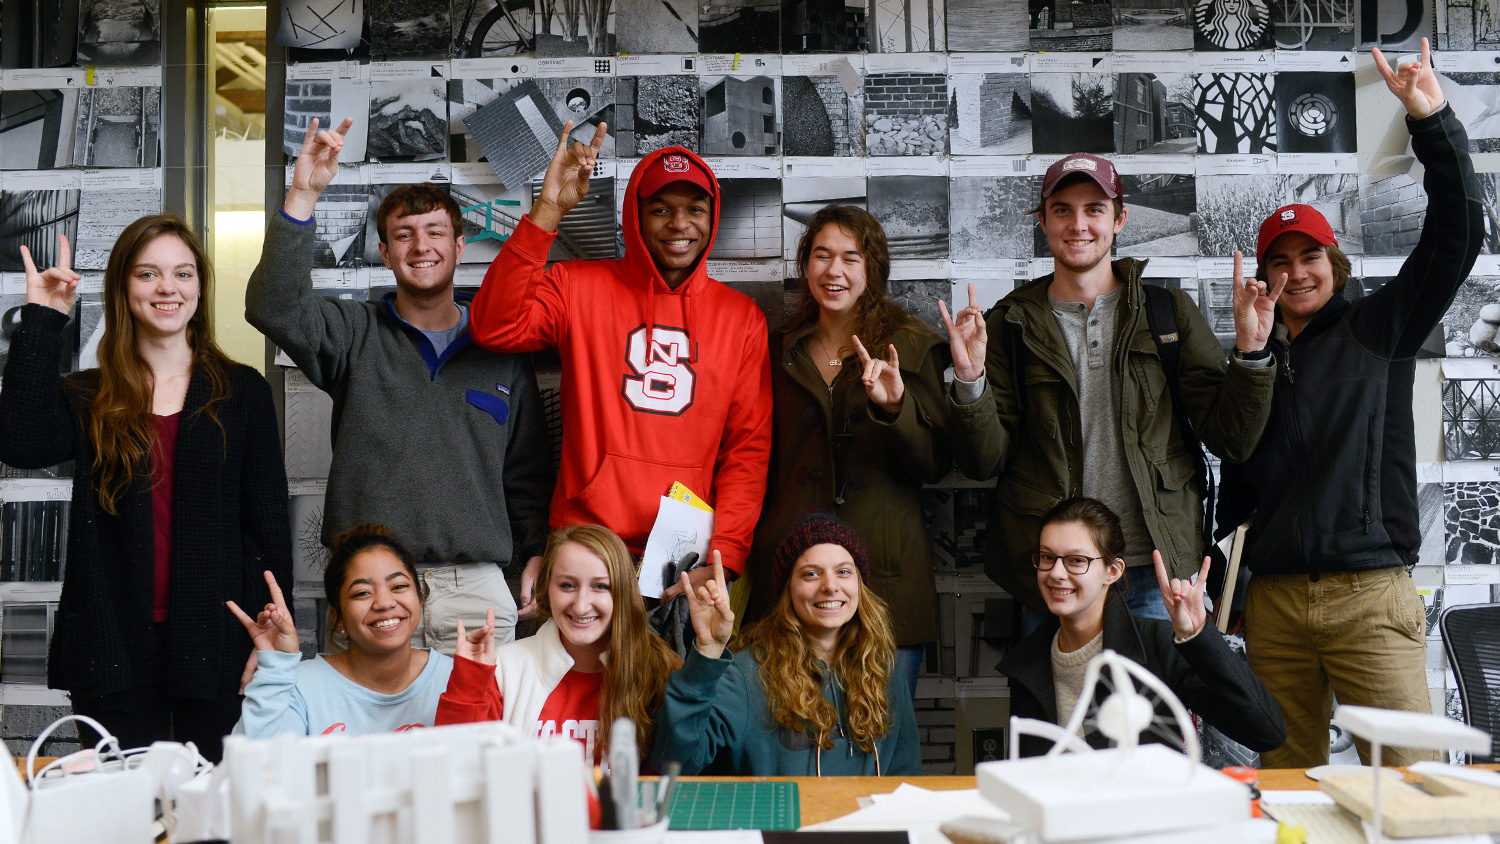 Students posing together in front of critique wall